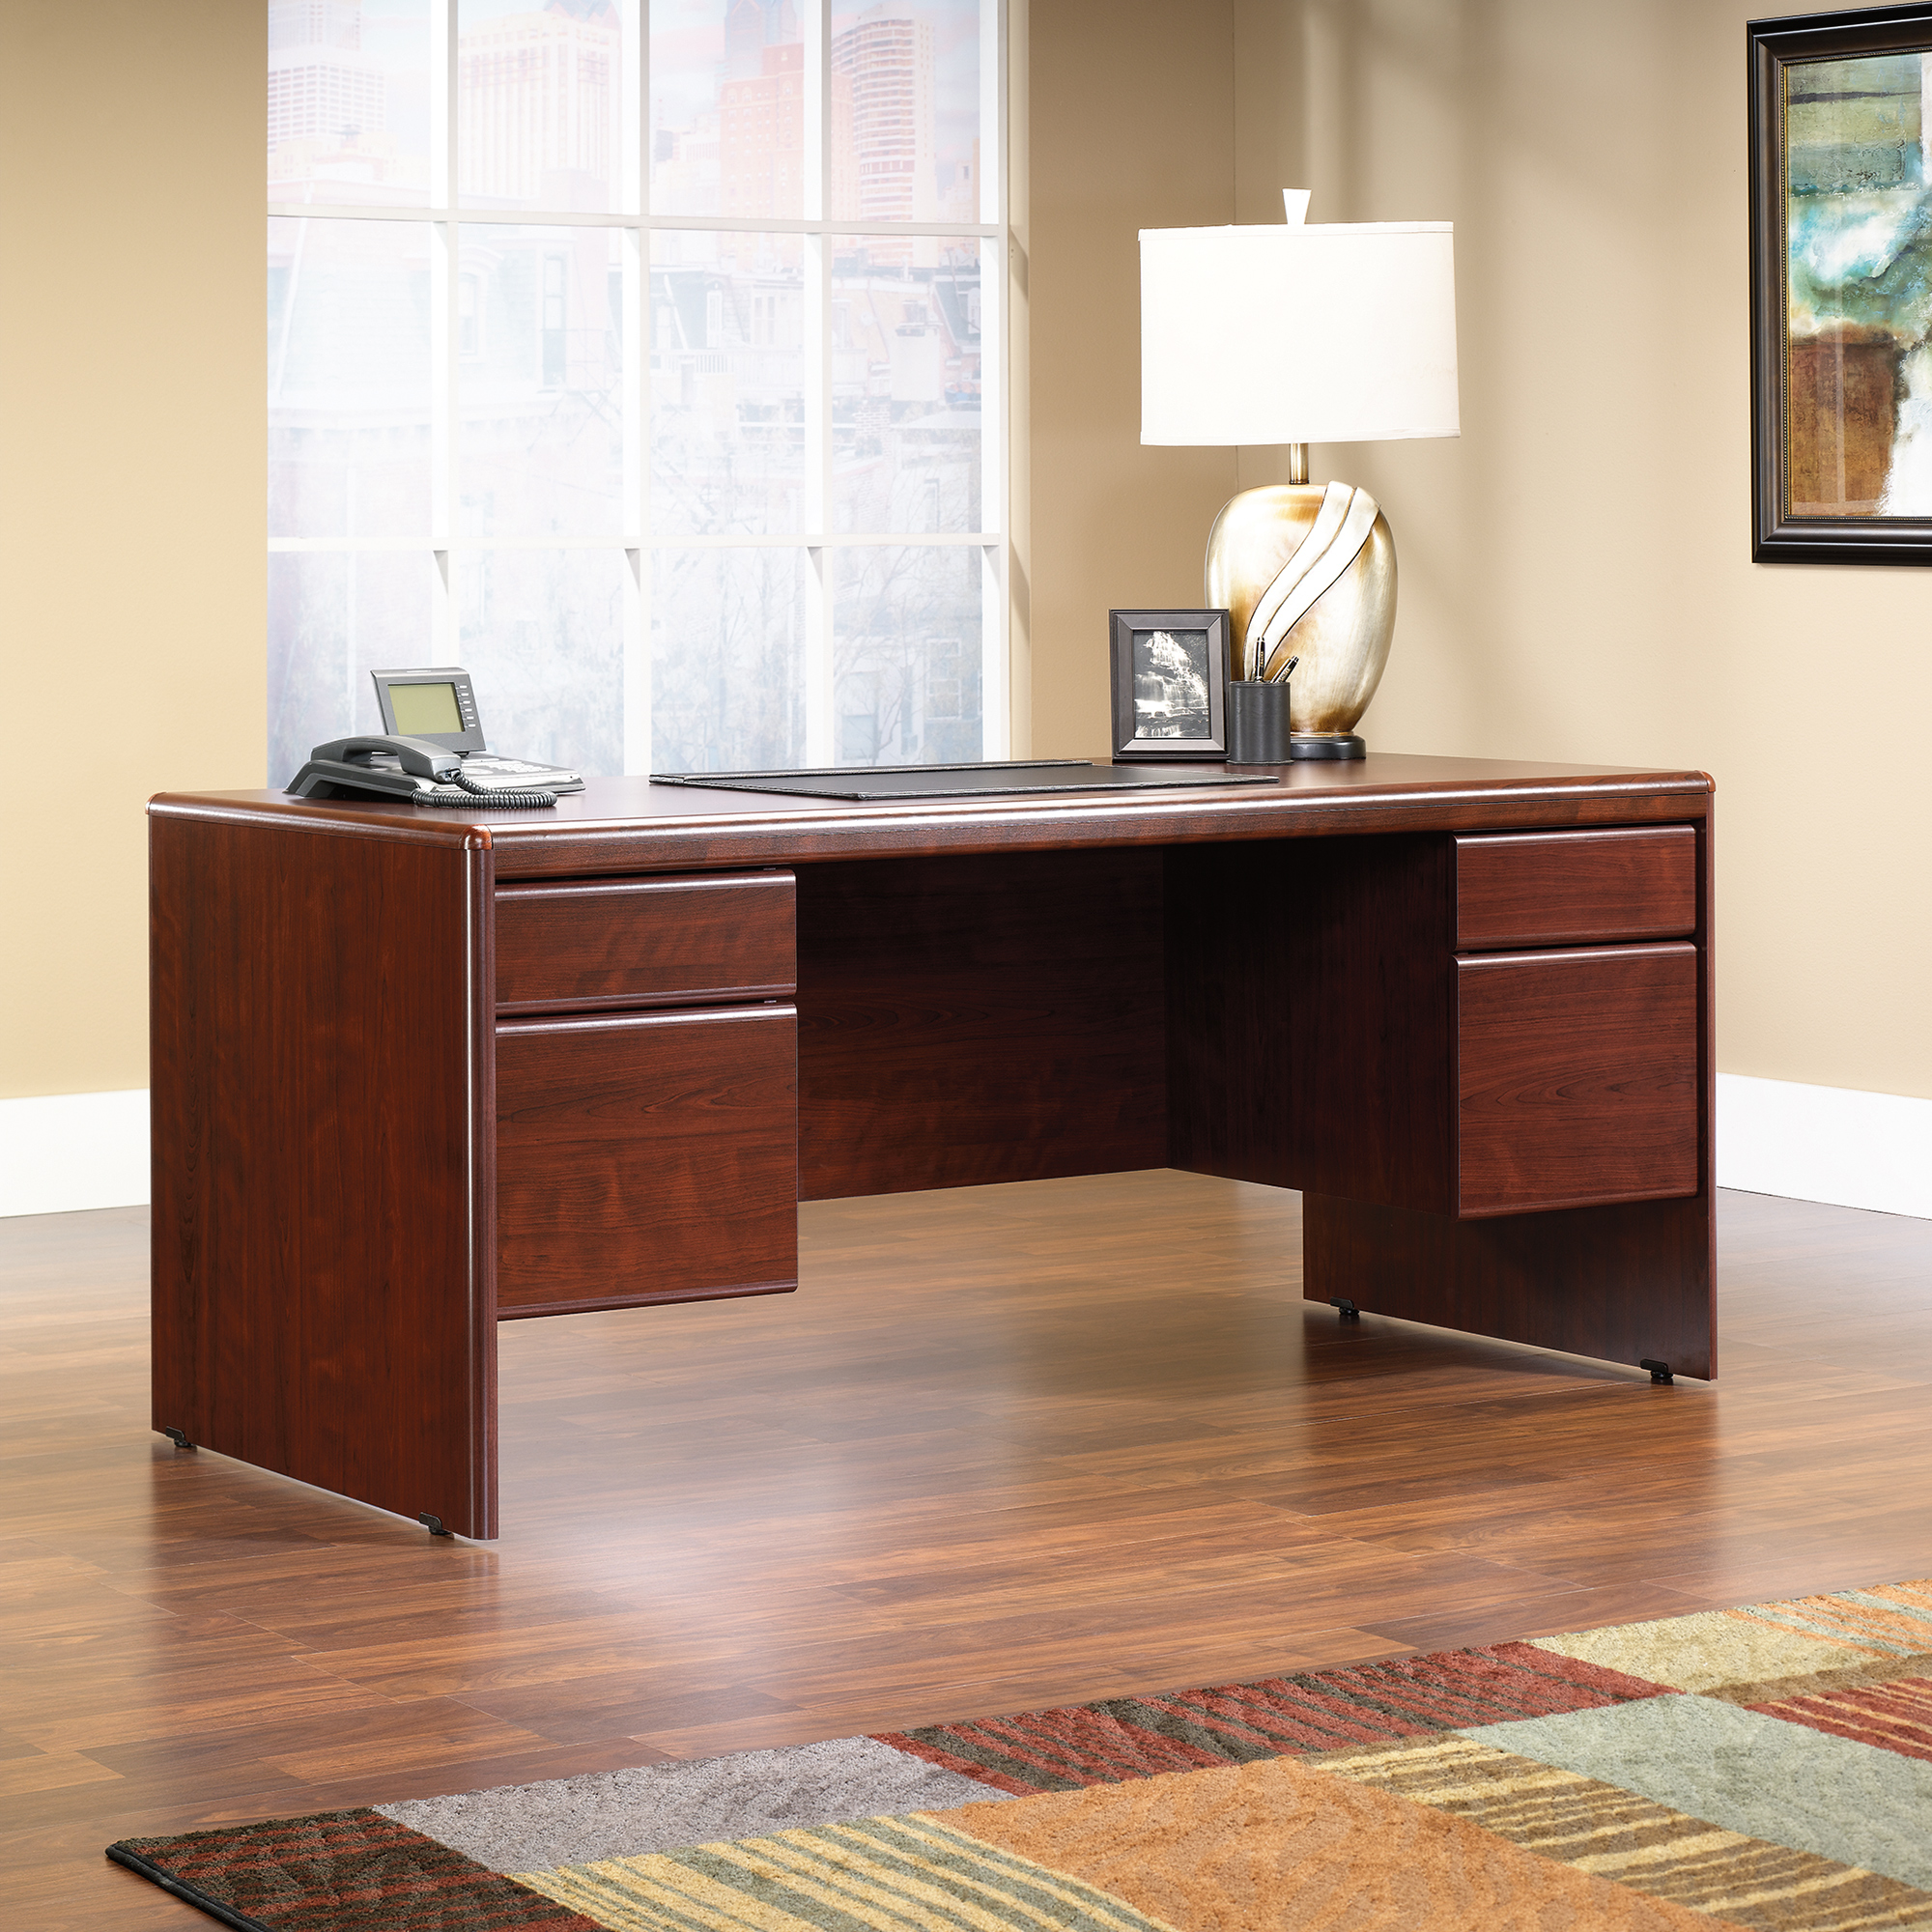 Sauder Cornerstone Executive Desk 404972 Sauder The Furniture Co